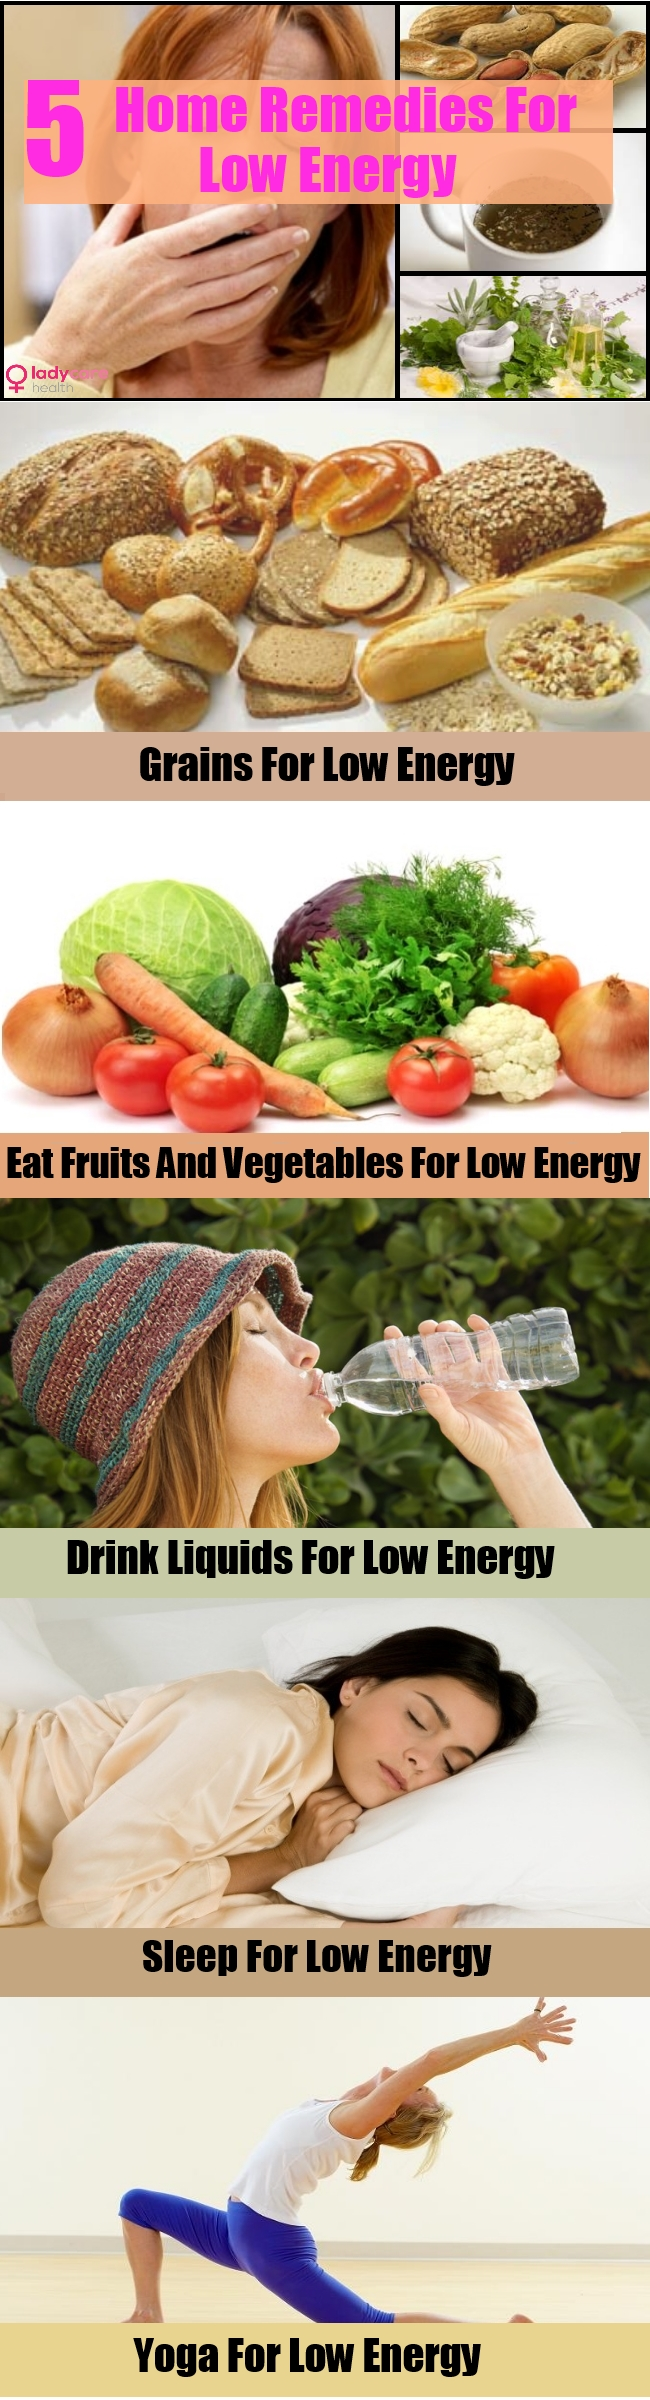 Remedies For Low Energy